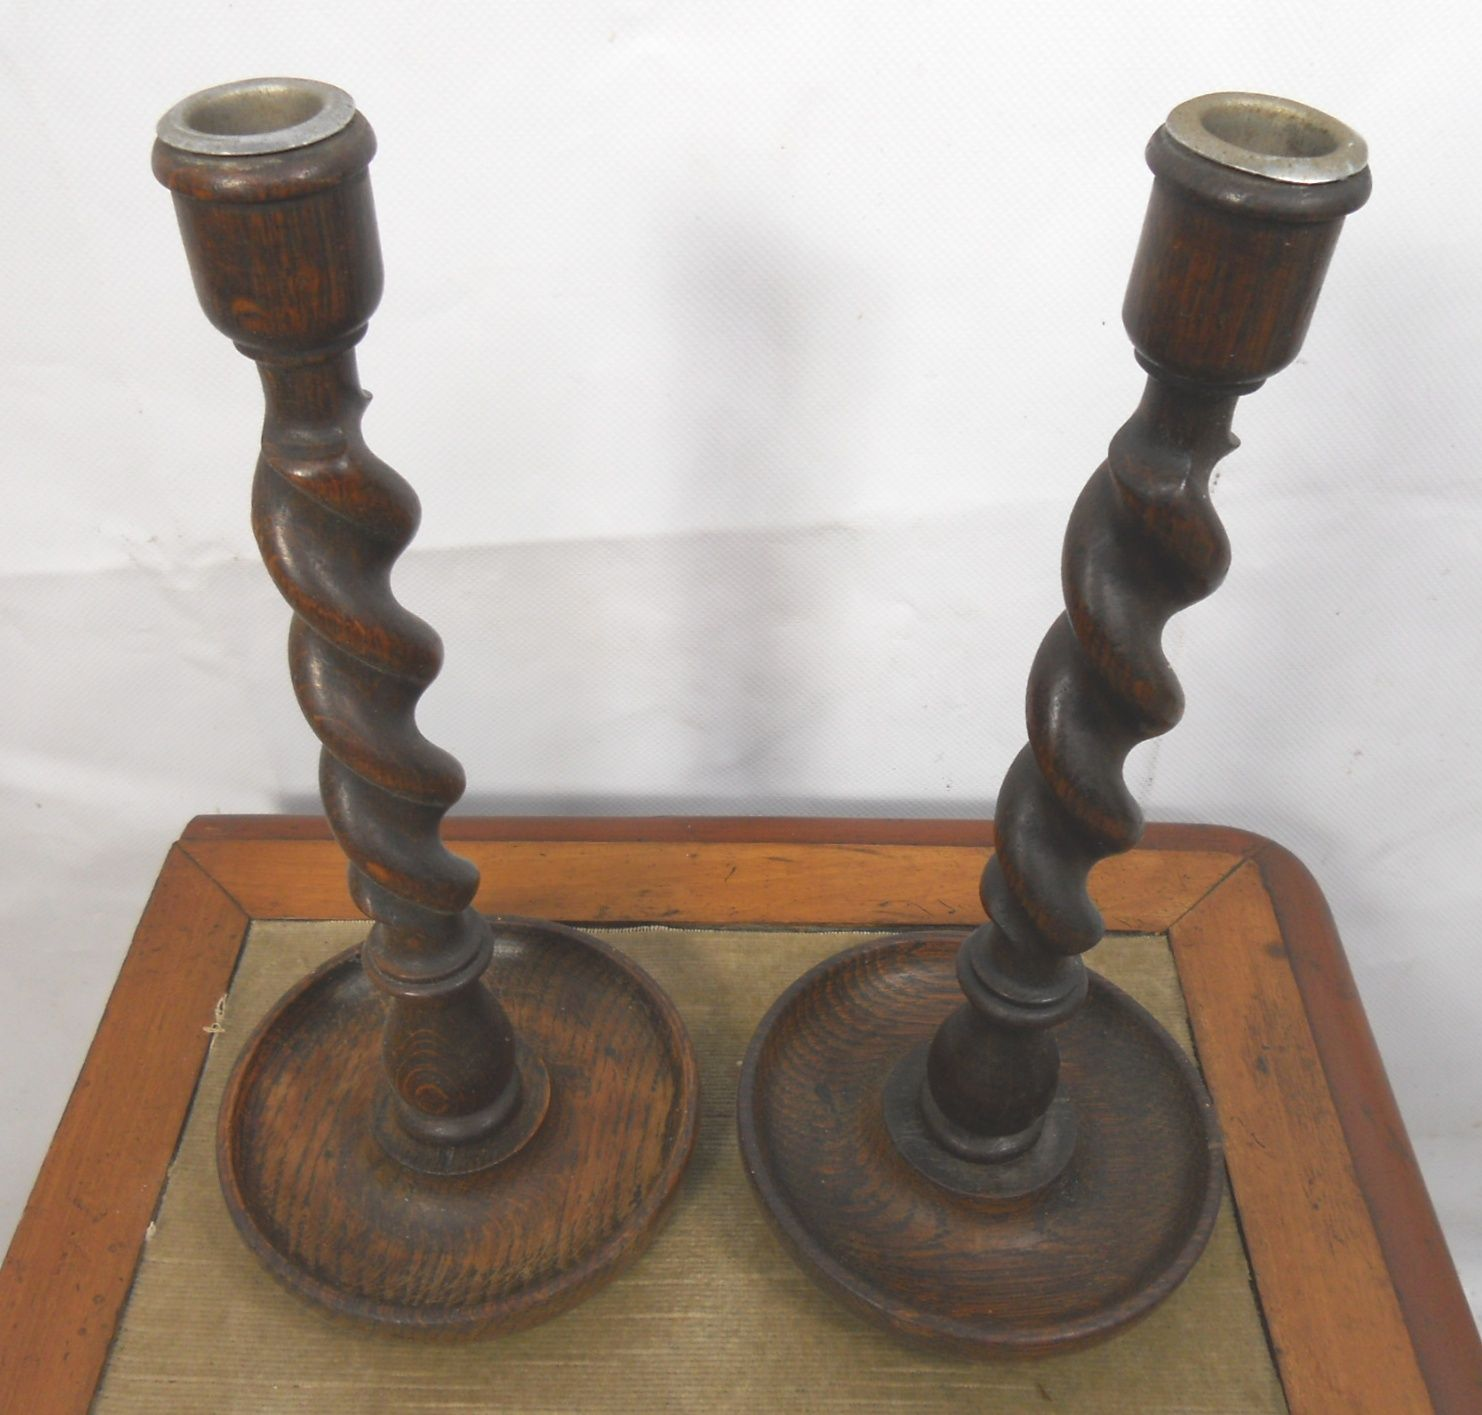 Two Pairs Oak Barley Twist Candlesticks : two pairs oak barley twist candlesticks 4 3373 p from www.affordableantiquefurniture.co.uk size 1482 x 1415 jpeg 181kB